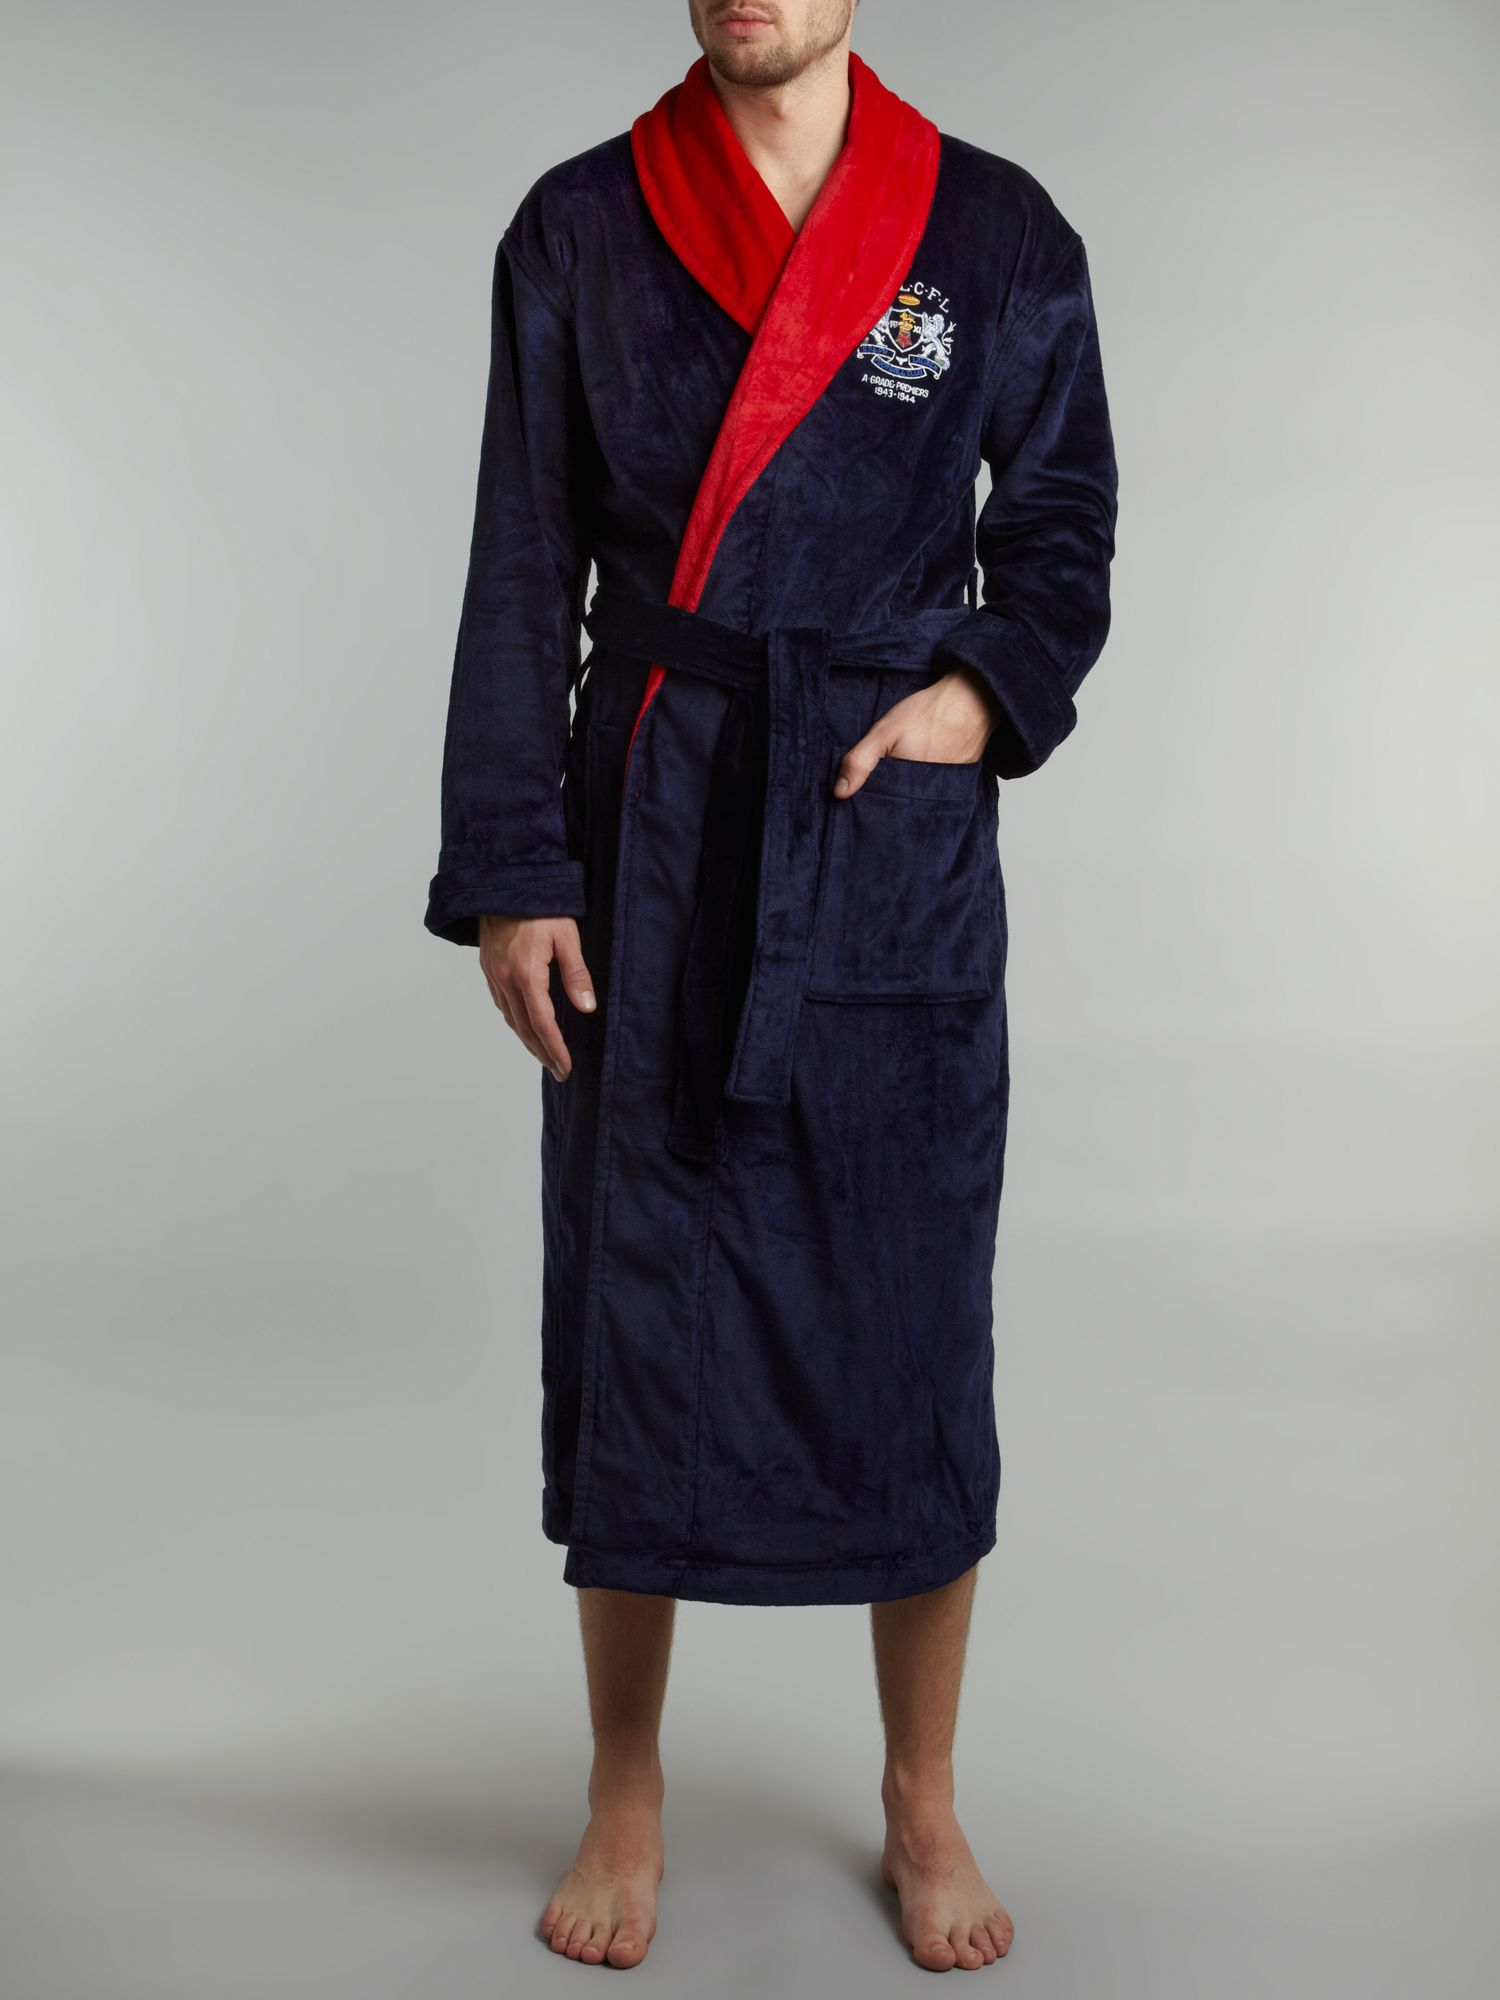 polo ralph lauren contrast collar robe in blue for men lyst. Black Bedroom Furniture Sets. Home Design Ideas